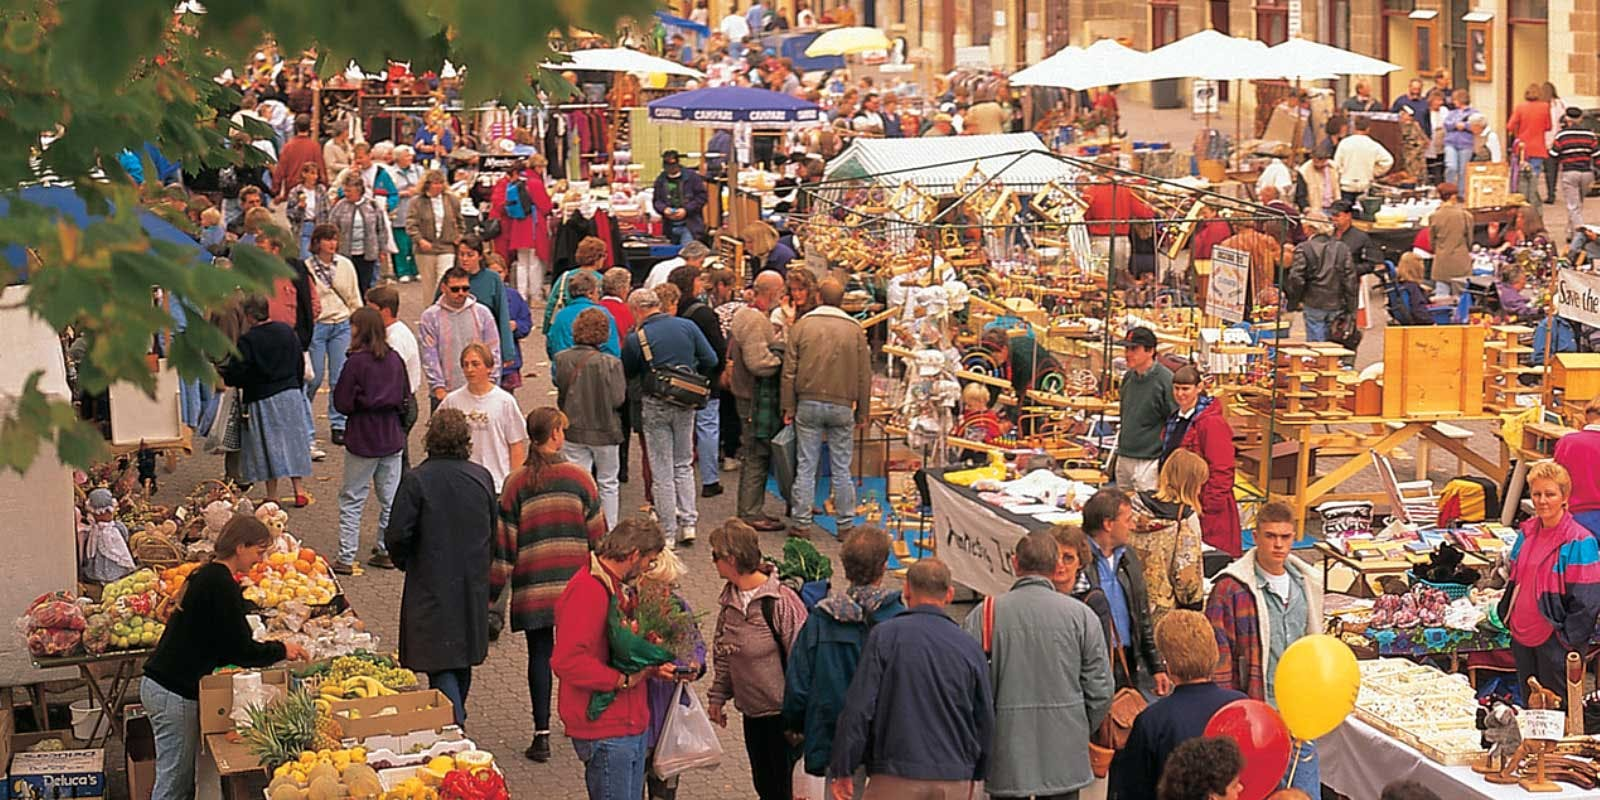 Business Studies: The 6 types of markets